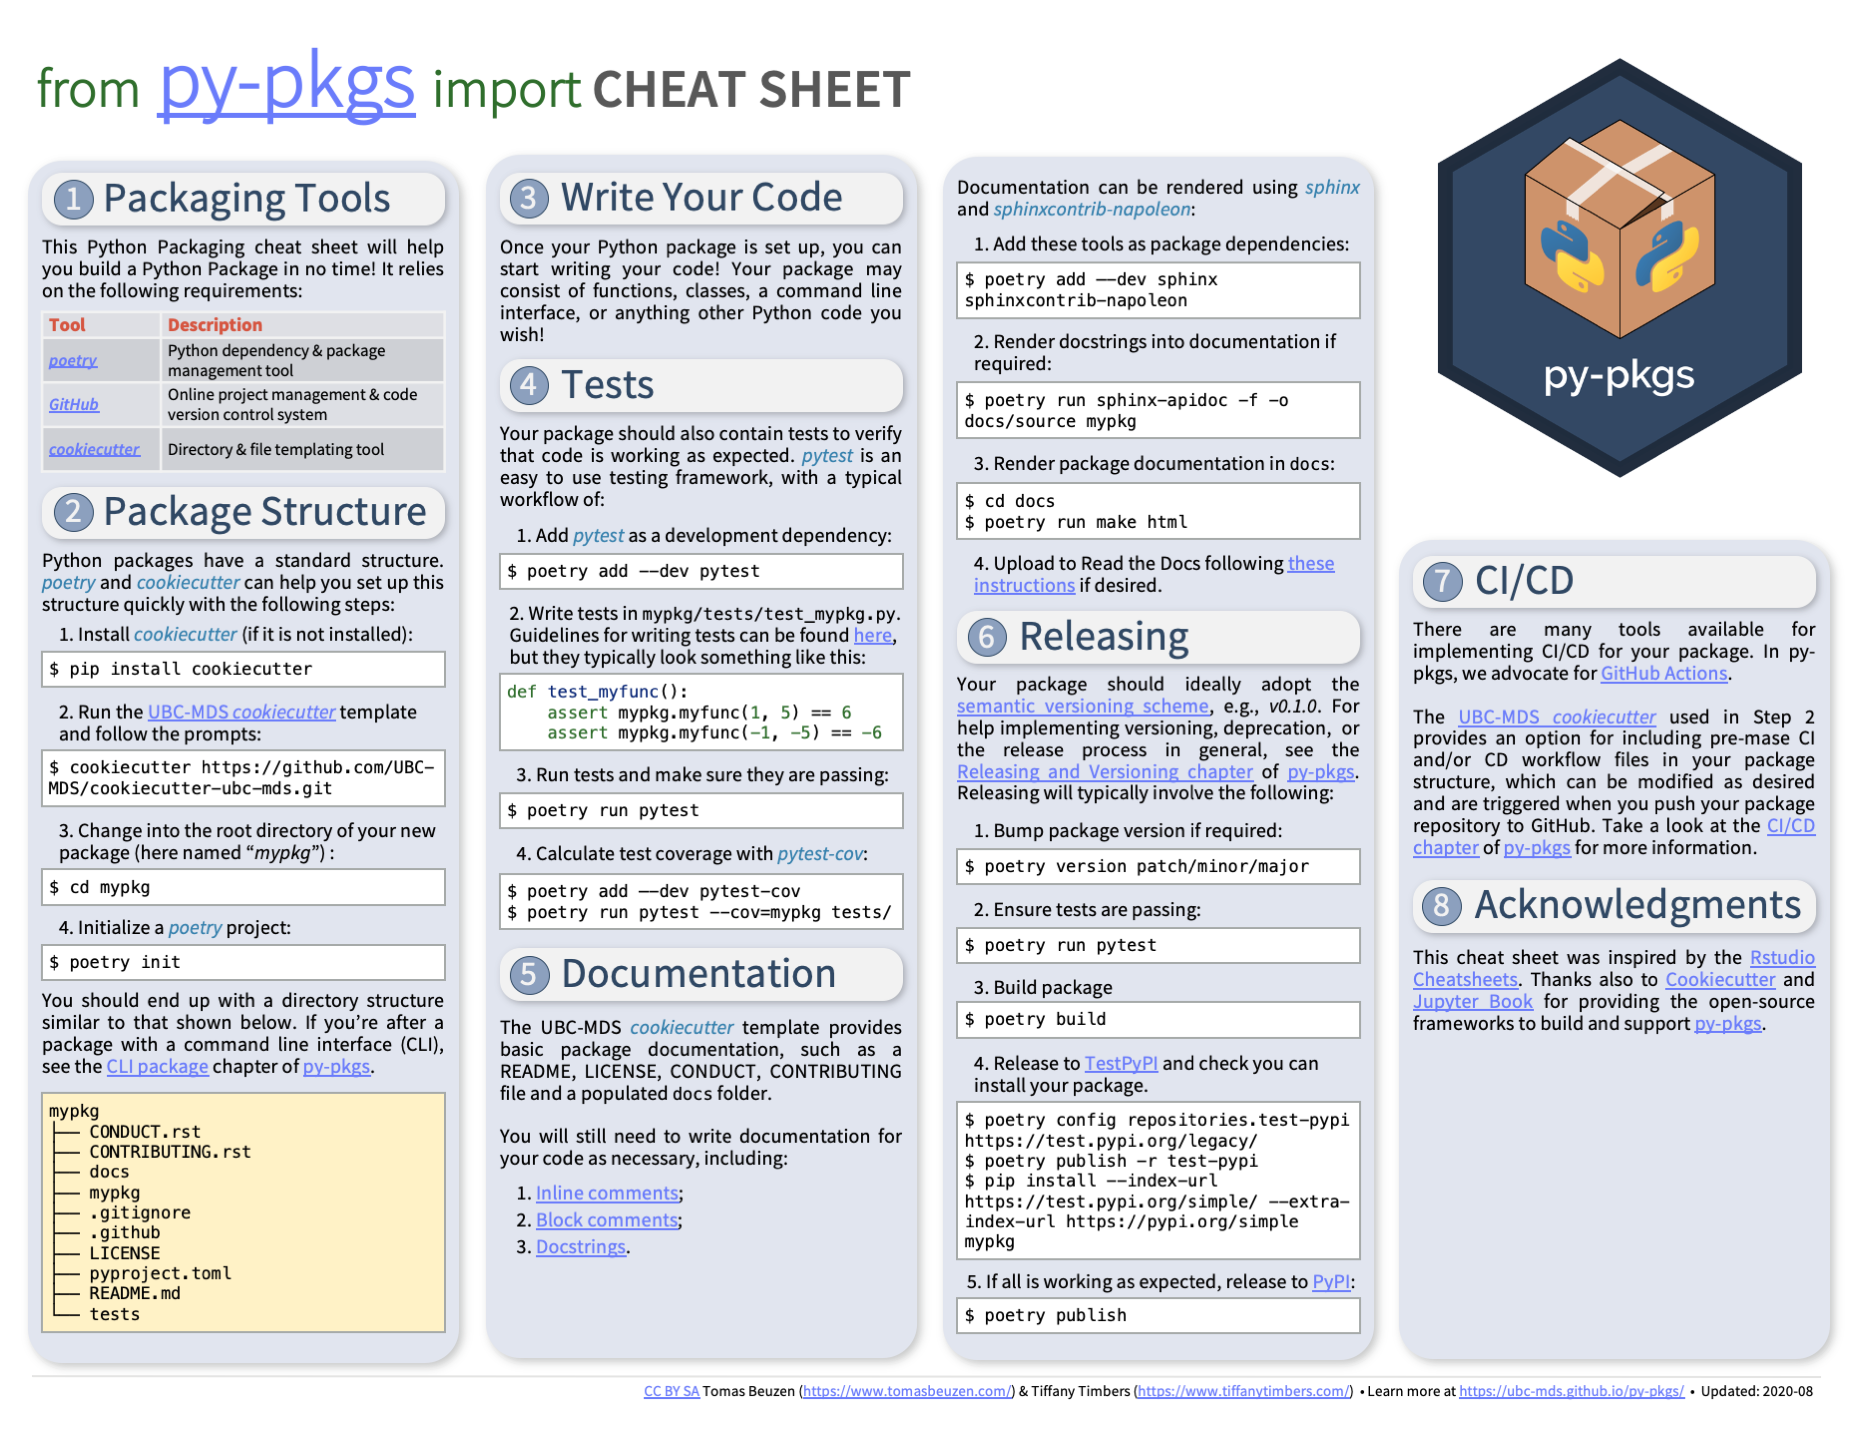 The Python packaging cheatsheet. [Download the cheat sheet here.](https://github.com/UBC-MDS/py-pkgs/blob/master/py-pkgs/images/raw/py_pkgs_cheatsheet.pdf)